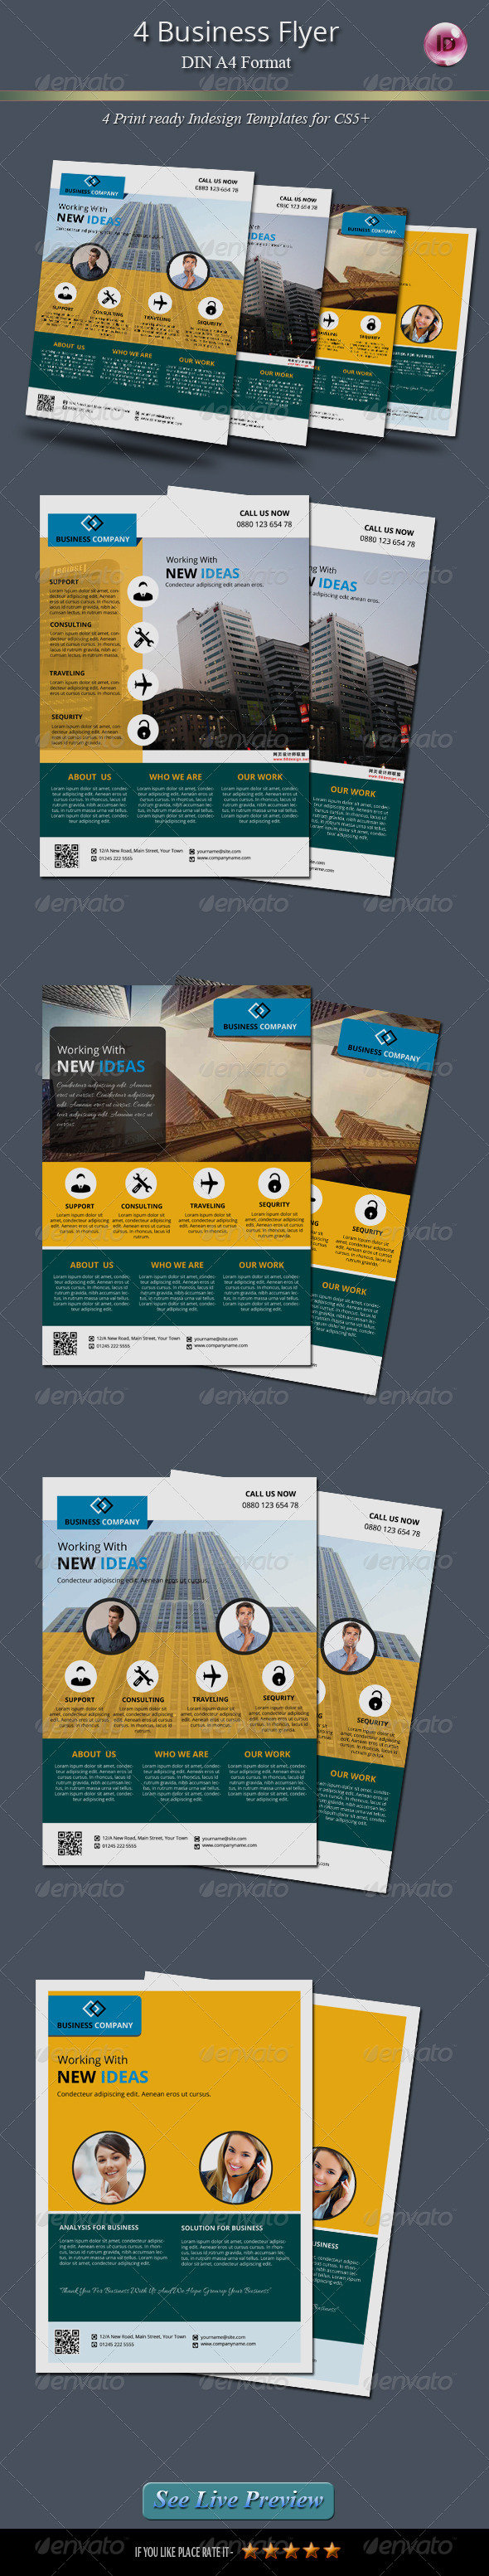 GraphicRiver 4 Business Flyer 7801769